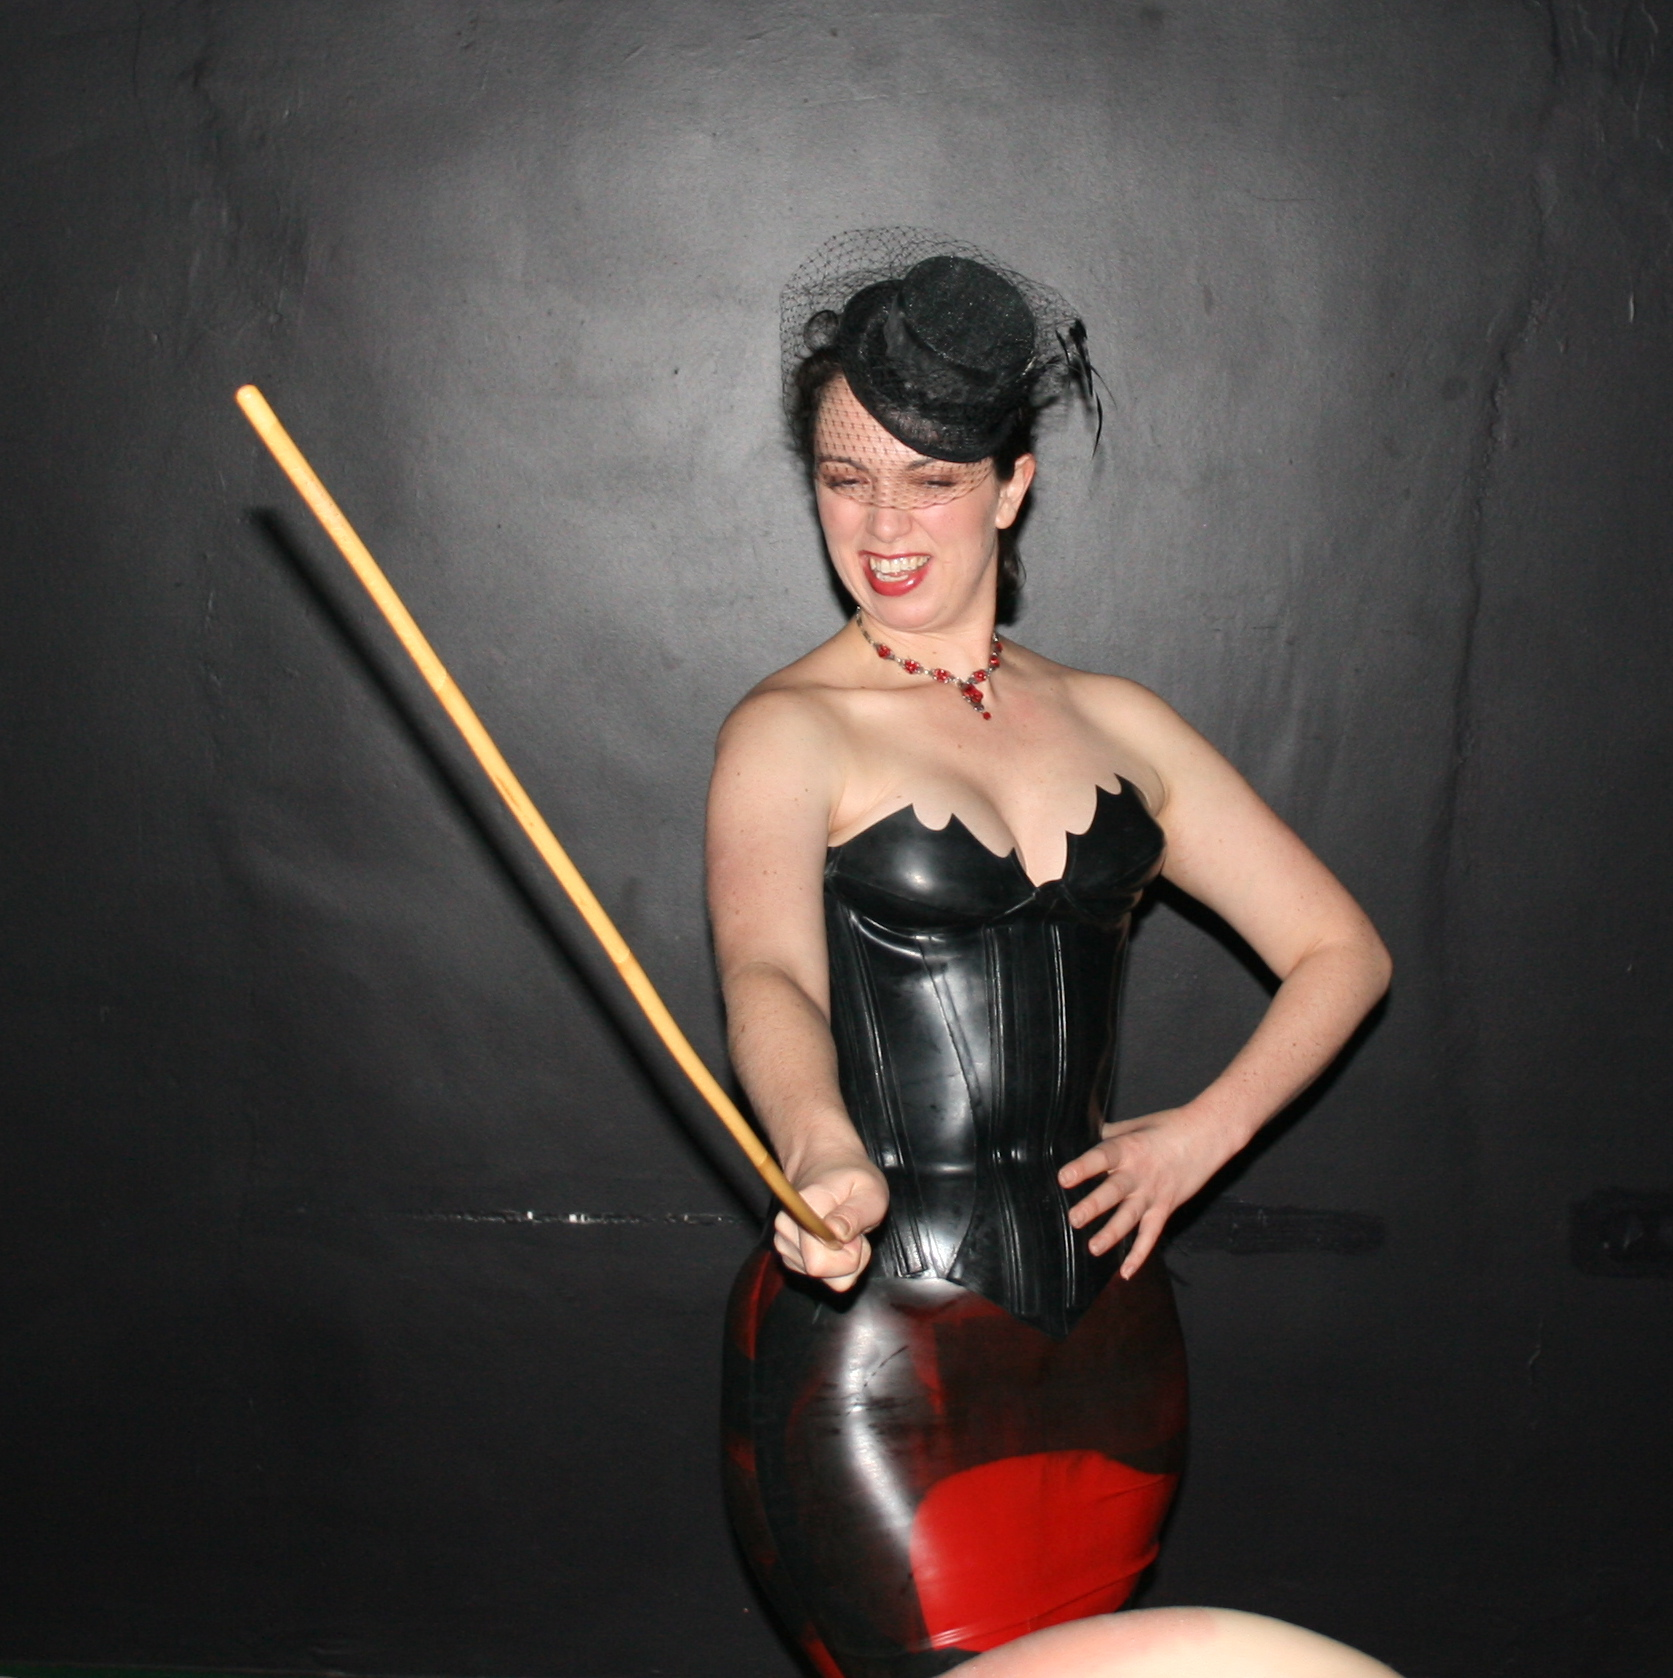 from bdsm mistress pictures